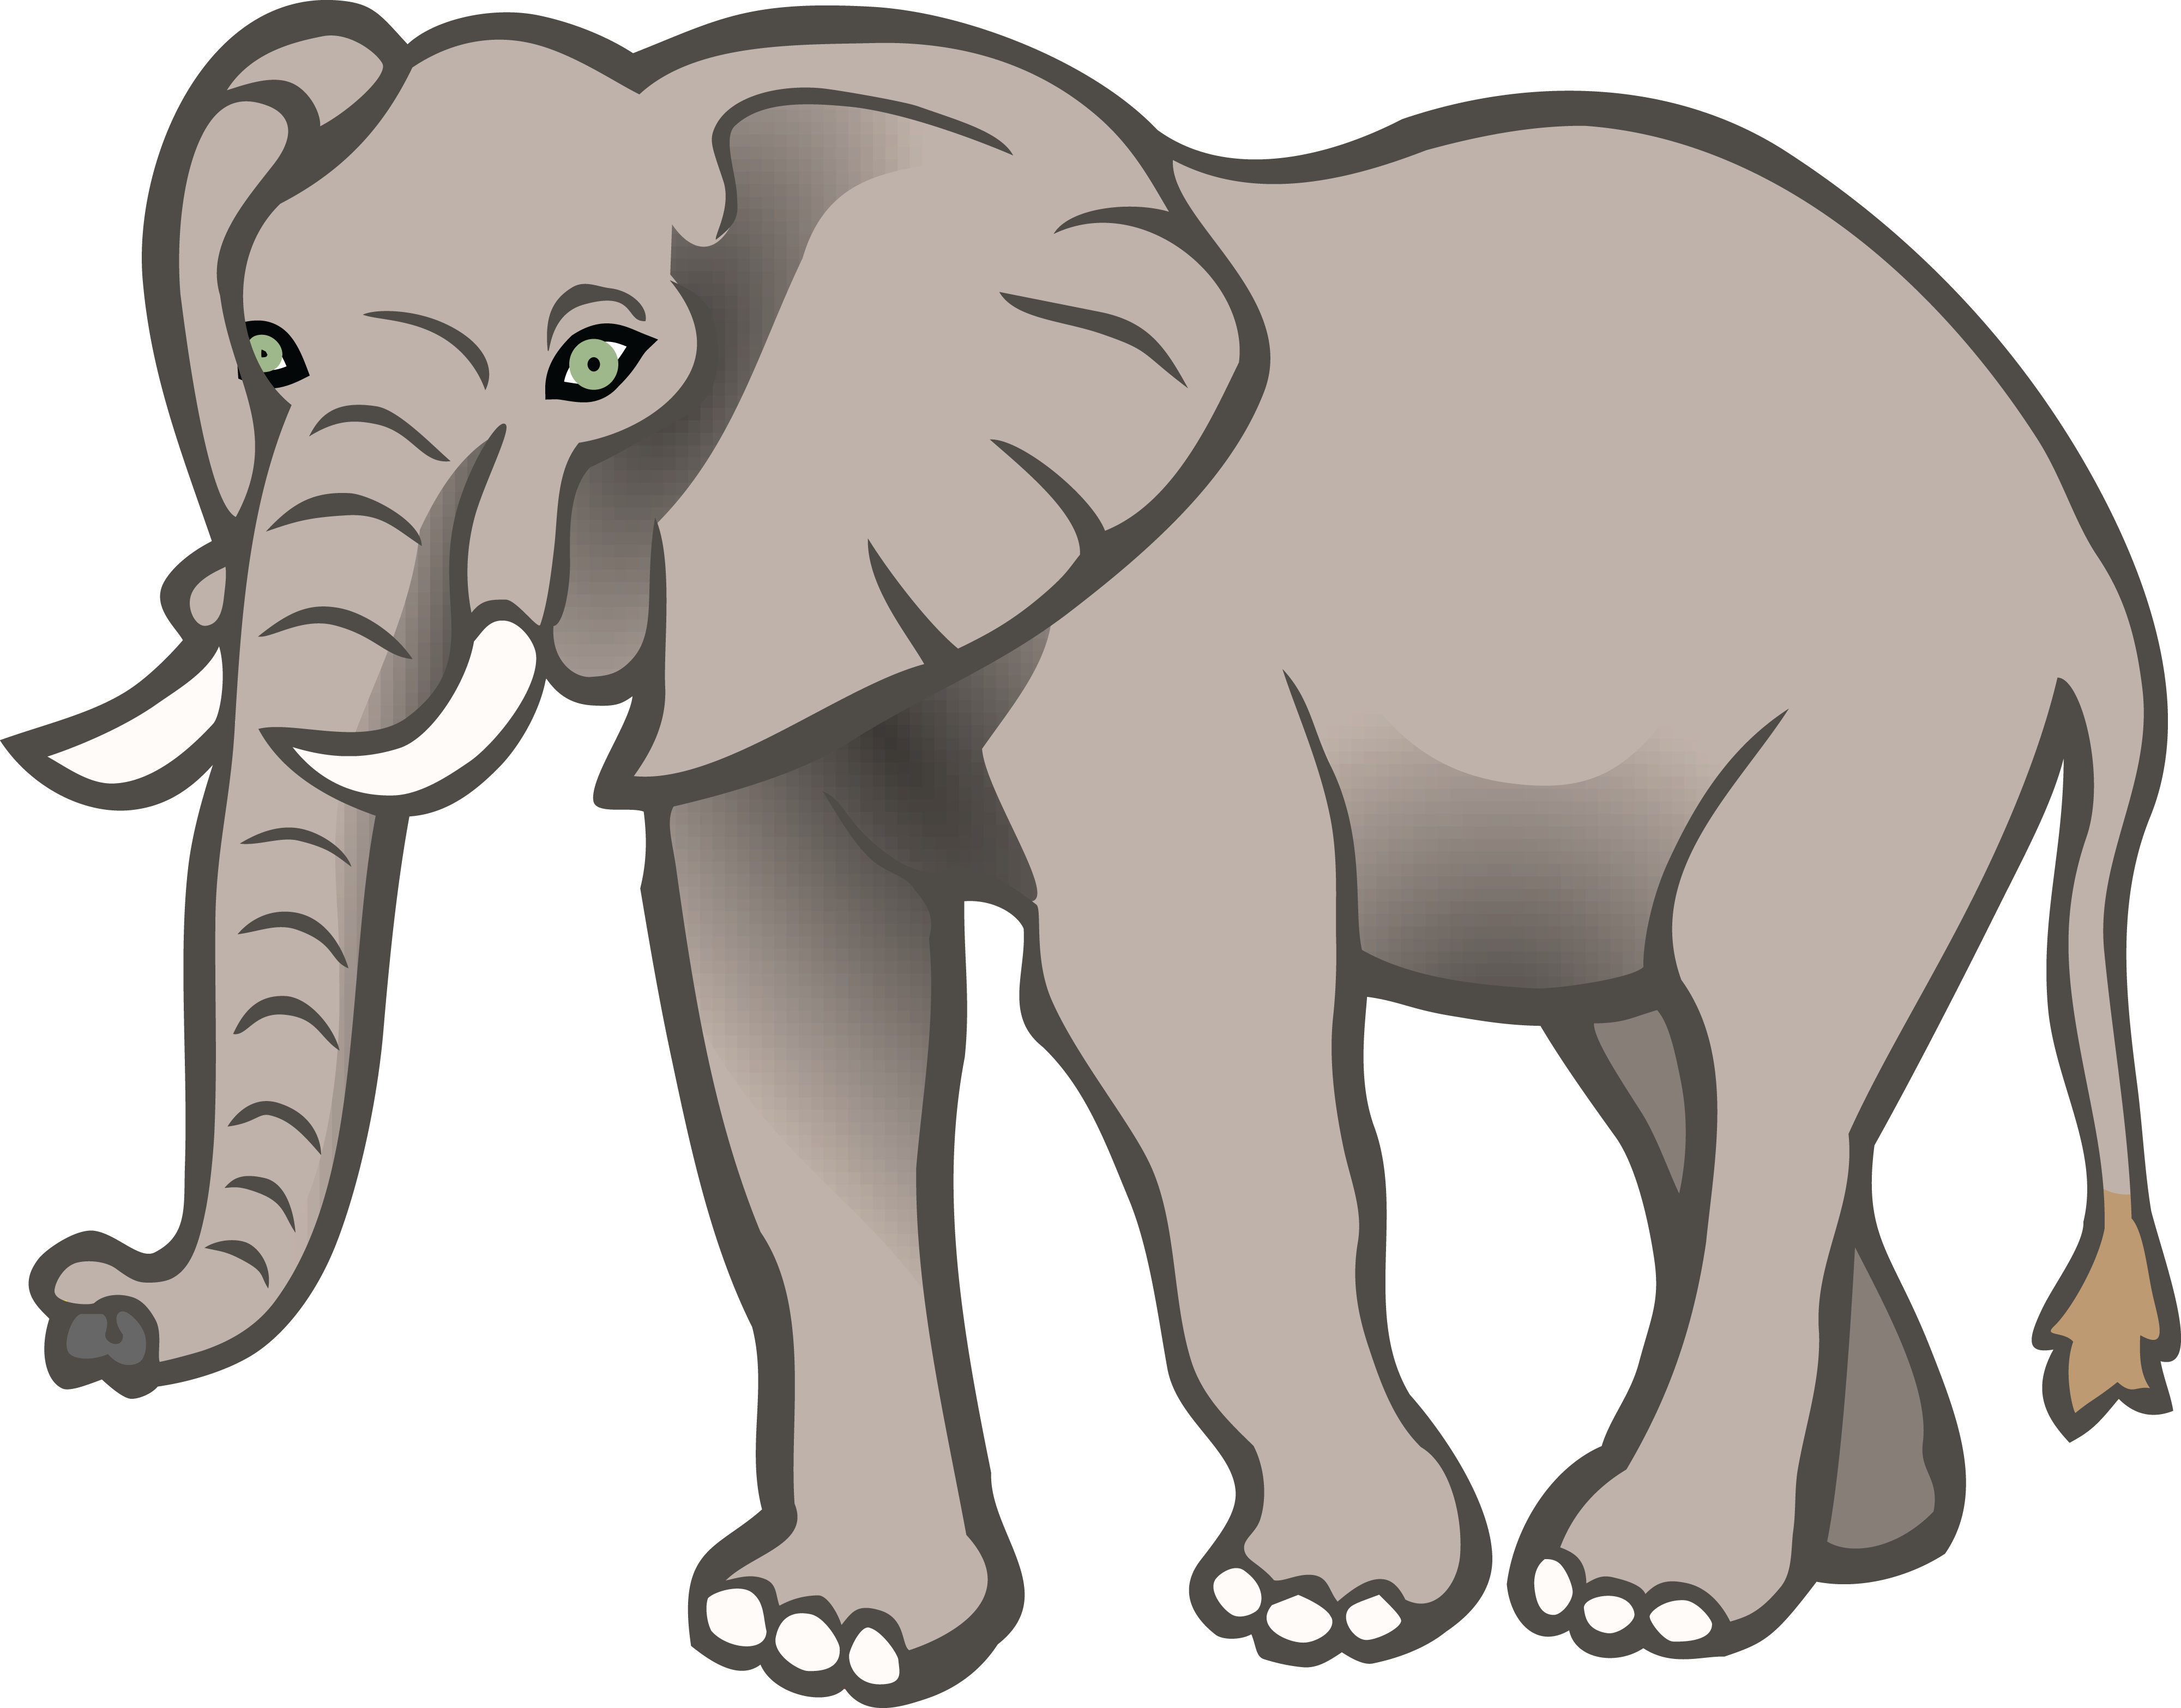 Elephant cliparts for.